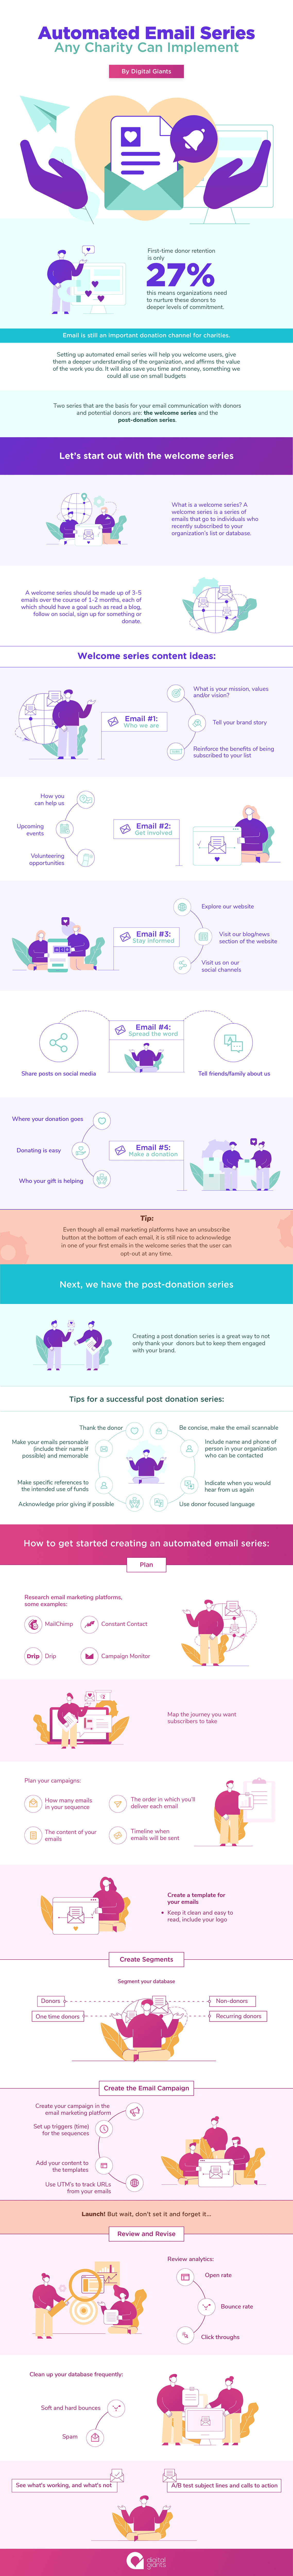 Automated Email Series, Emails from Charity, Infographic